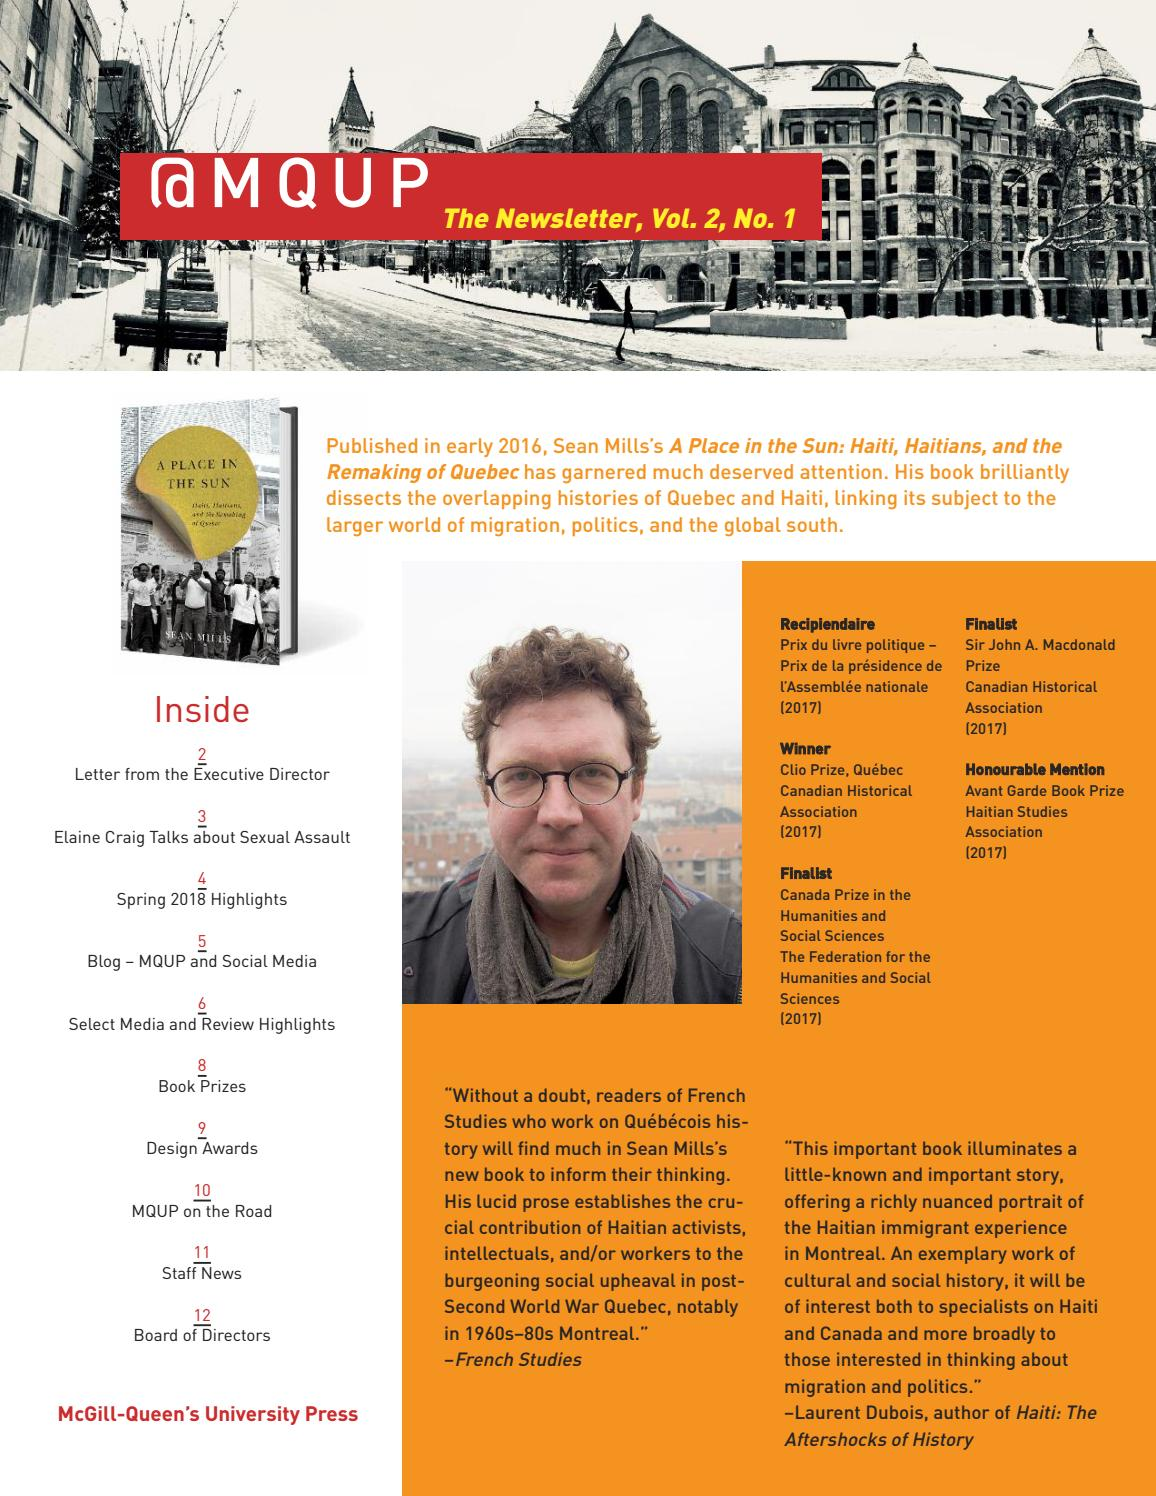 MQUP - The Newsletter, Vol  2, No  1 by McGill-Queen's University